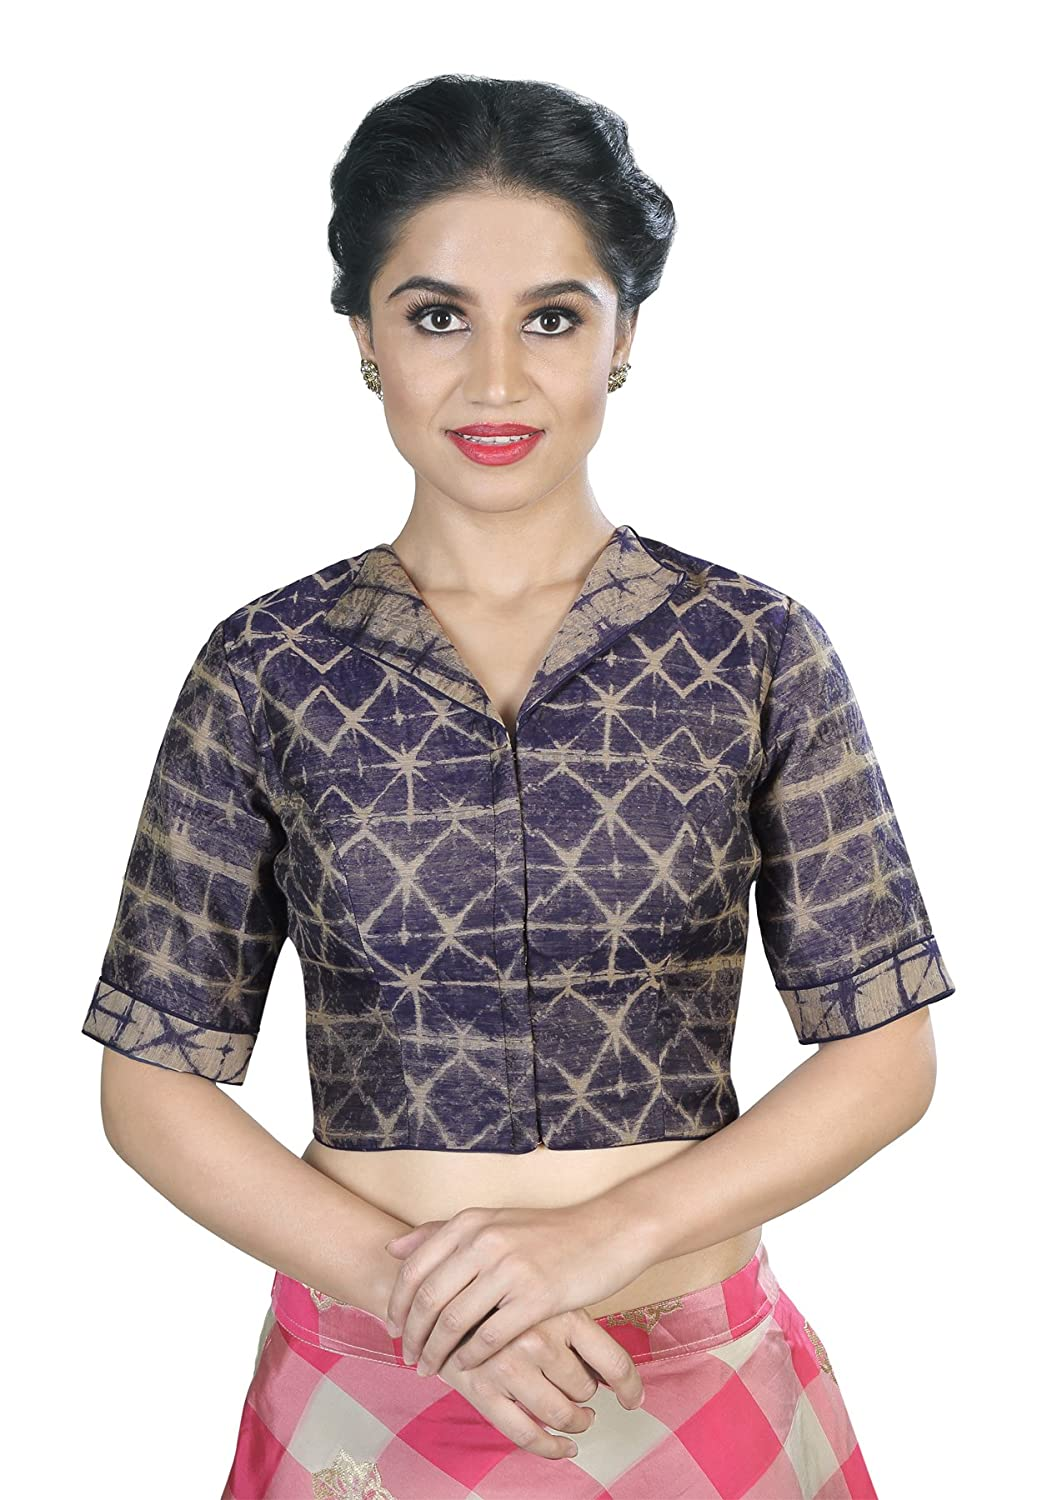 617db2ea961f4 Salwar Studio Women s Navy Blue color Ikat Silk Readymade Saree  Blouse-SSB1672-NVBL-42(OM-0030746 Navy Blue 42)  Amazon.in  Clothing    Accessories